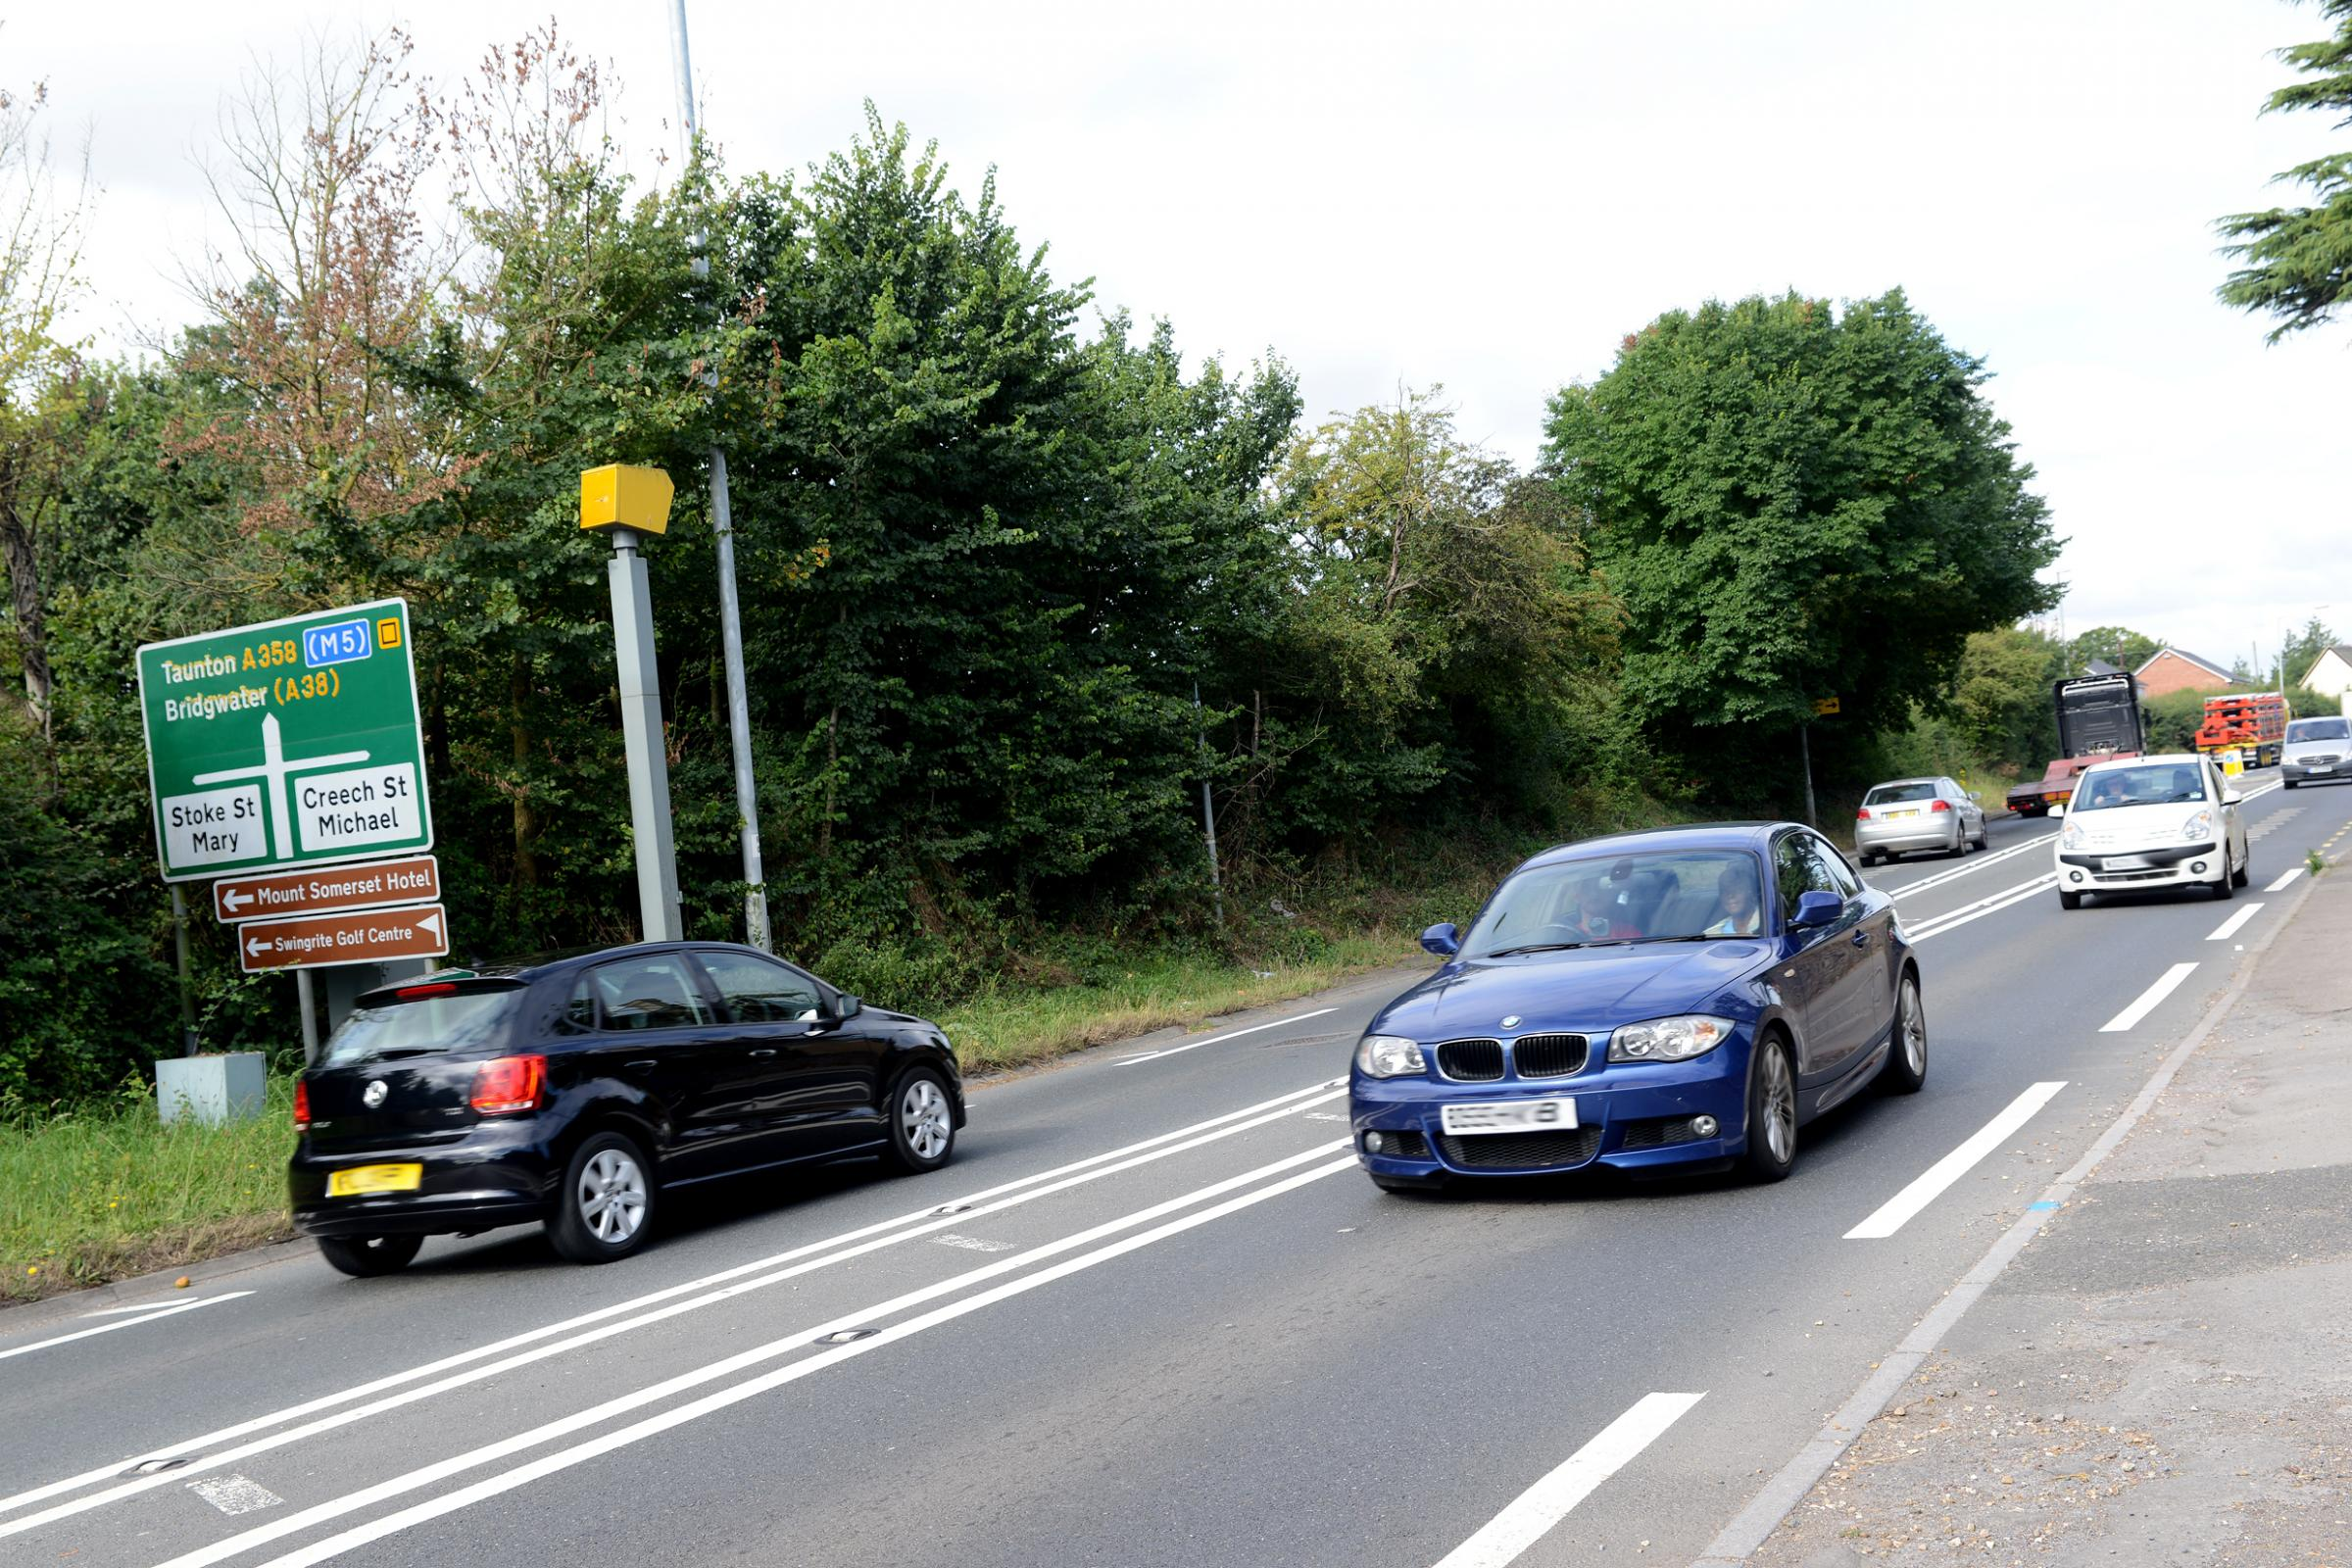 A358 consultation to reopen 'early' next year